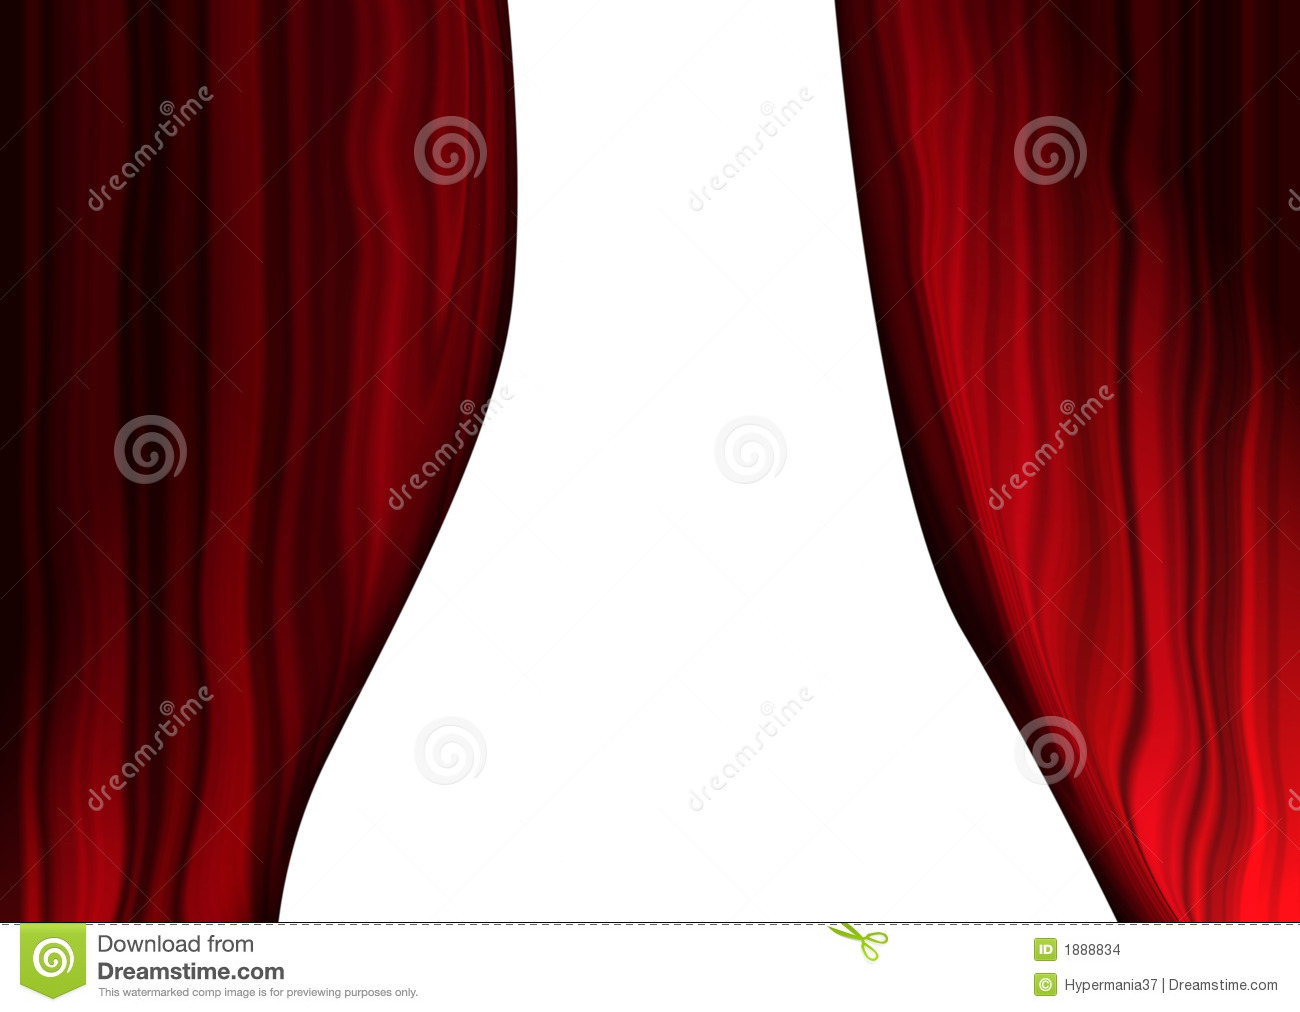 Theatrical Curtains Stock Images - Image: 1888834